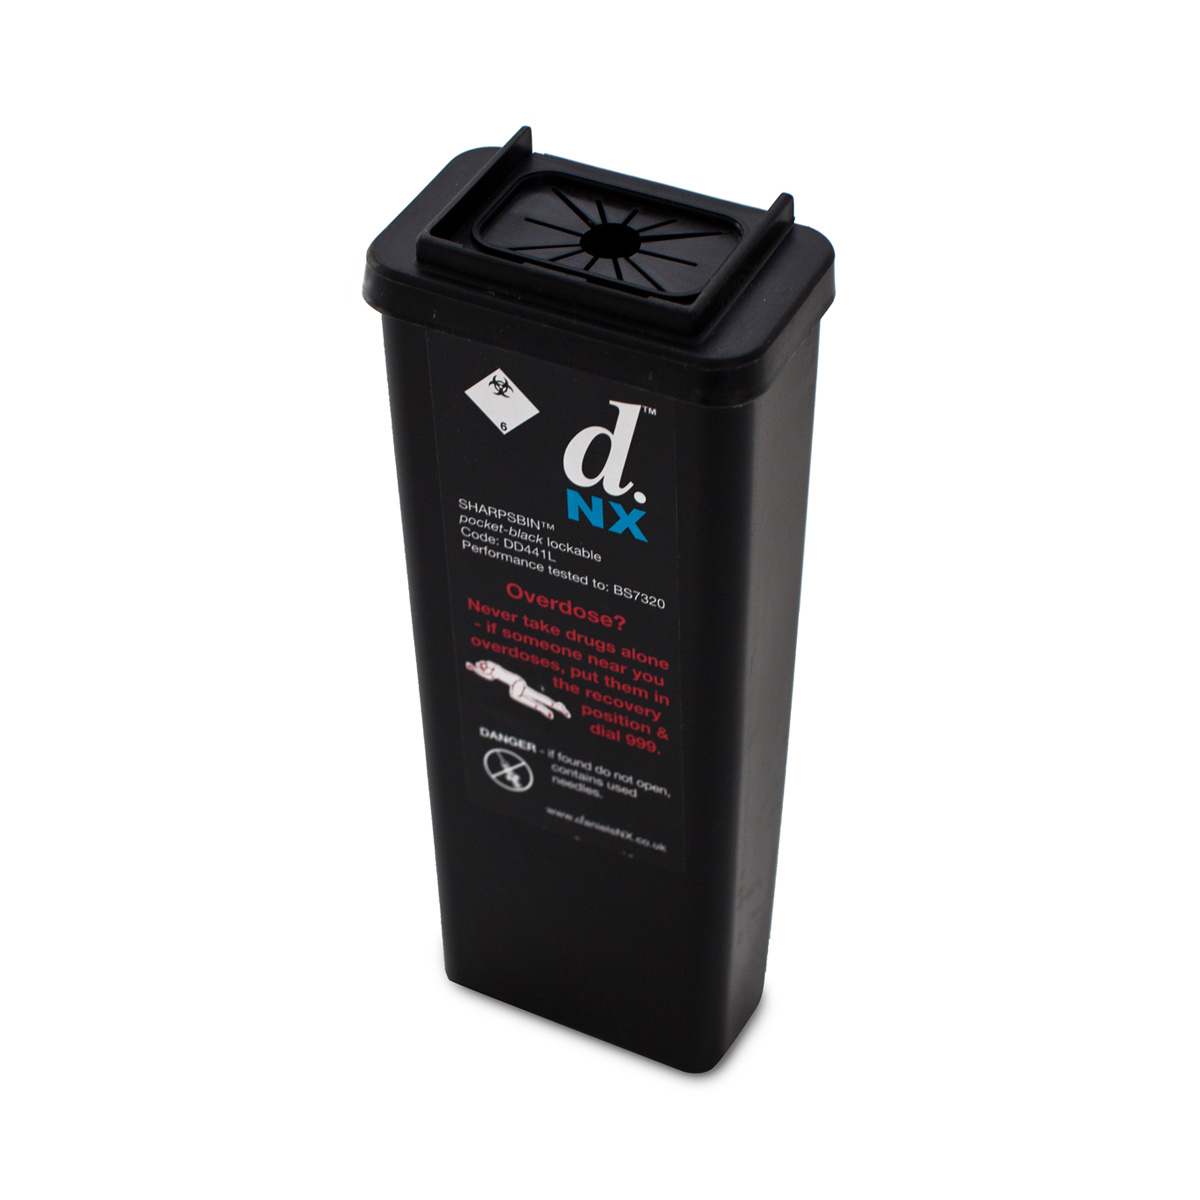 Daniels 0.5L Pocket bin (temp out of stock)